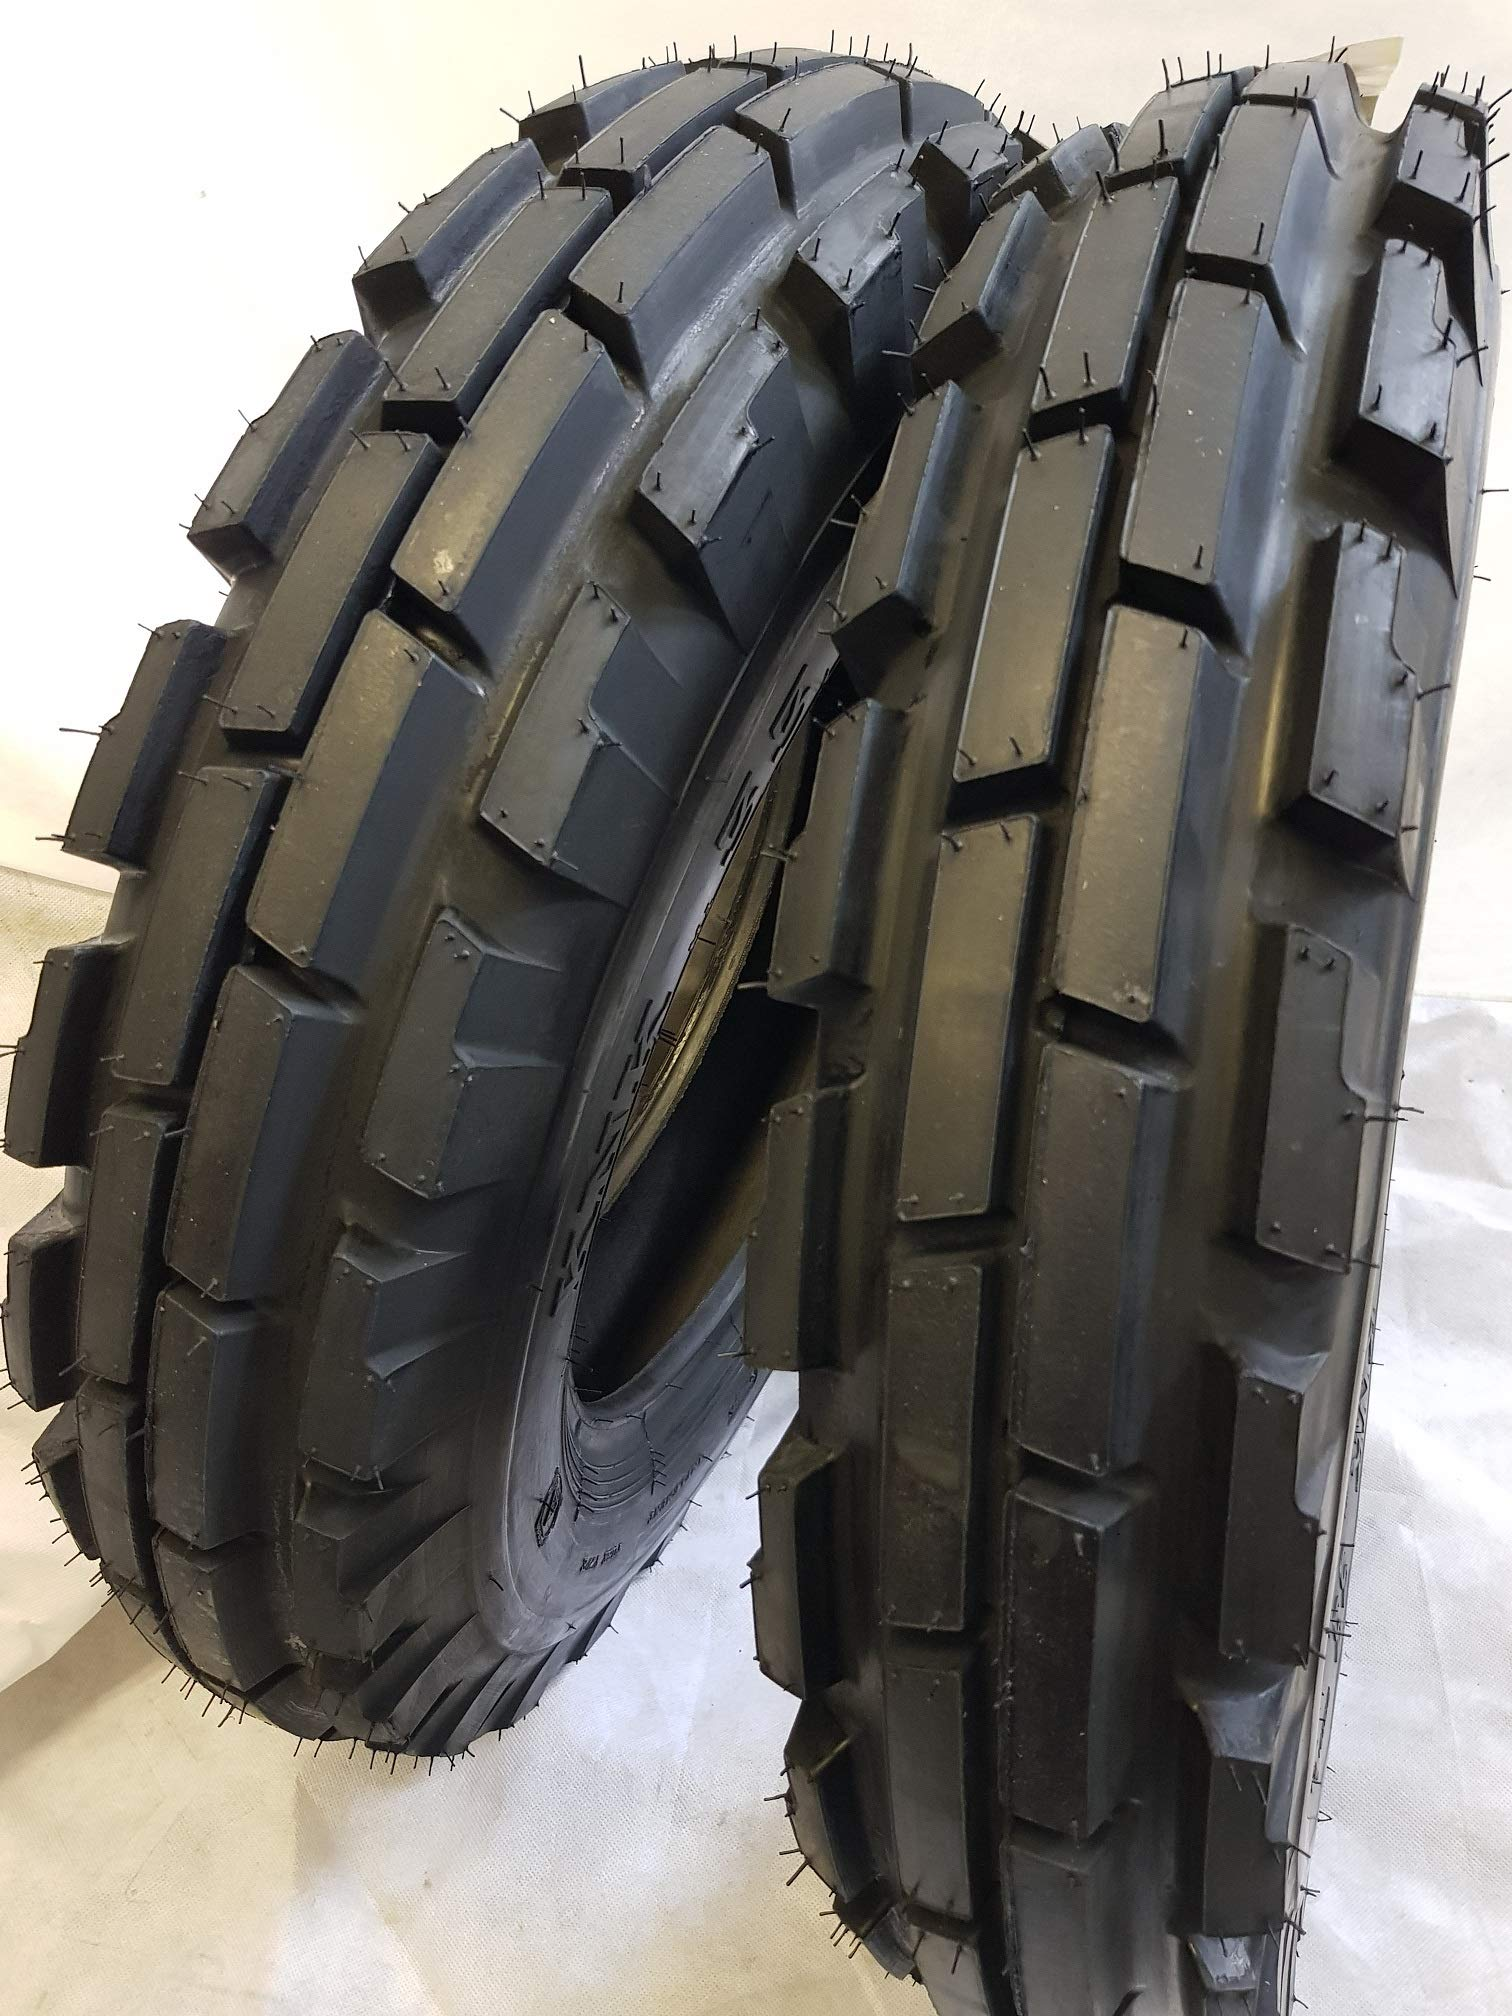 (2 TIRES + 2 TUBES) 6.00-16 ROAD WARRIOR 8 PLY KNK33 Farm Tractor Tire 60016 6.00X16 by Road Warrior